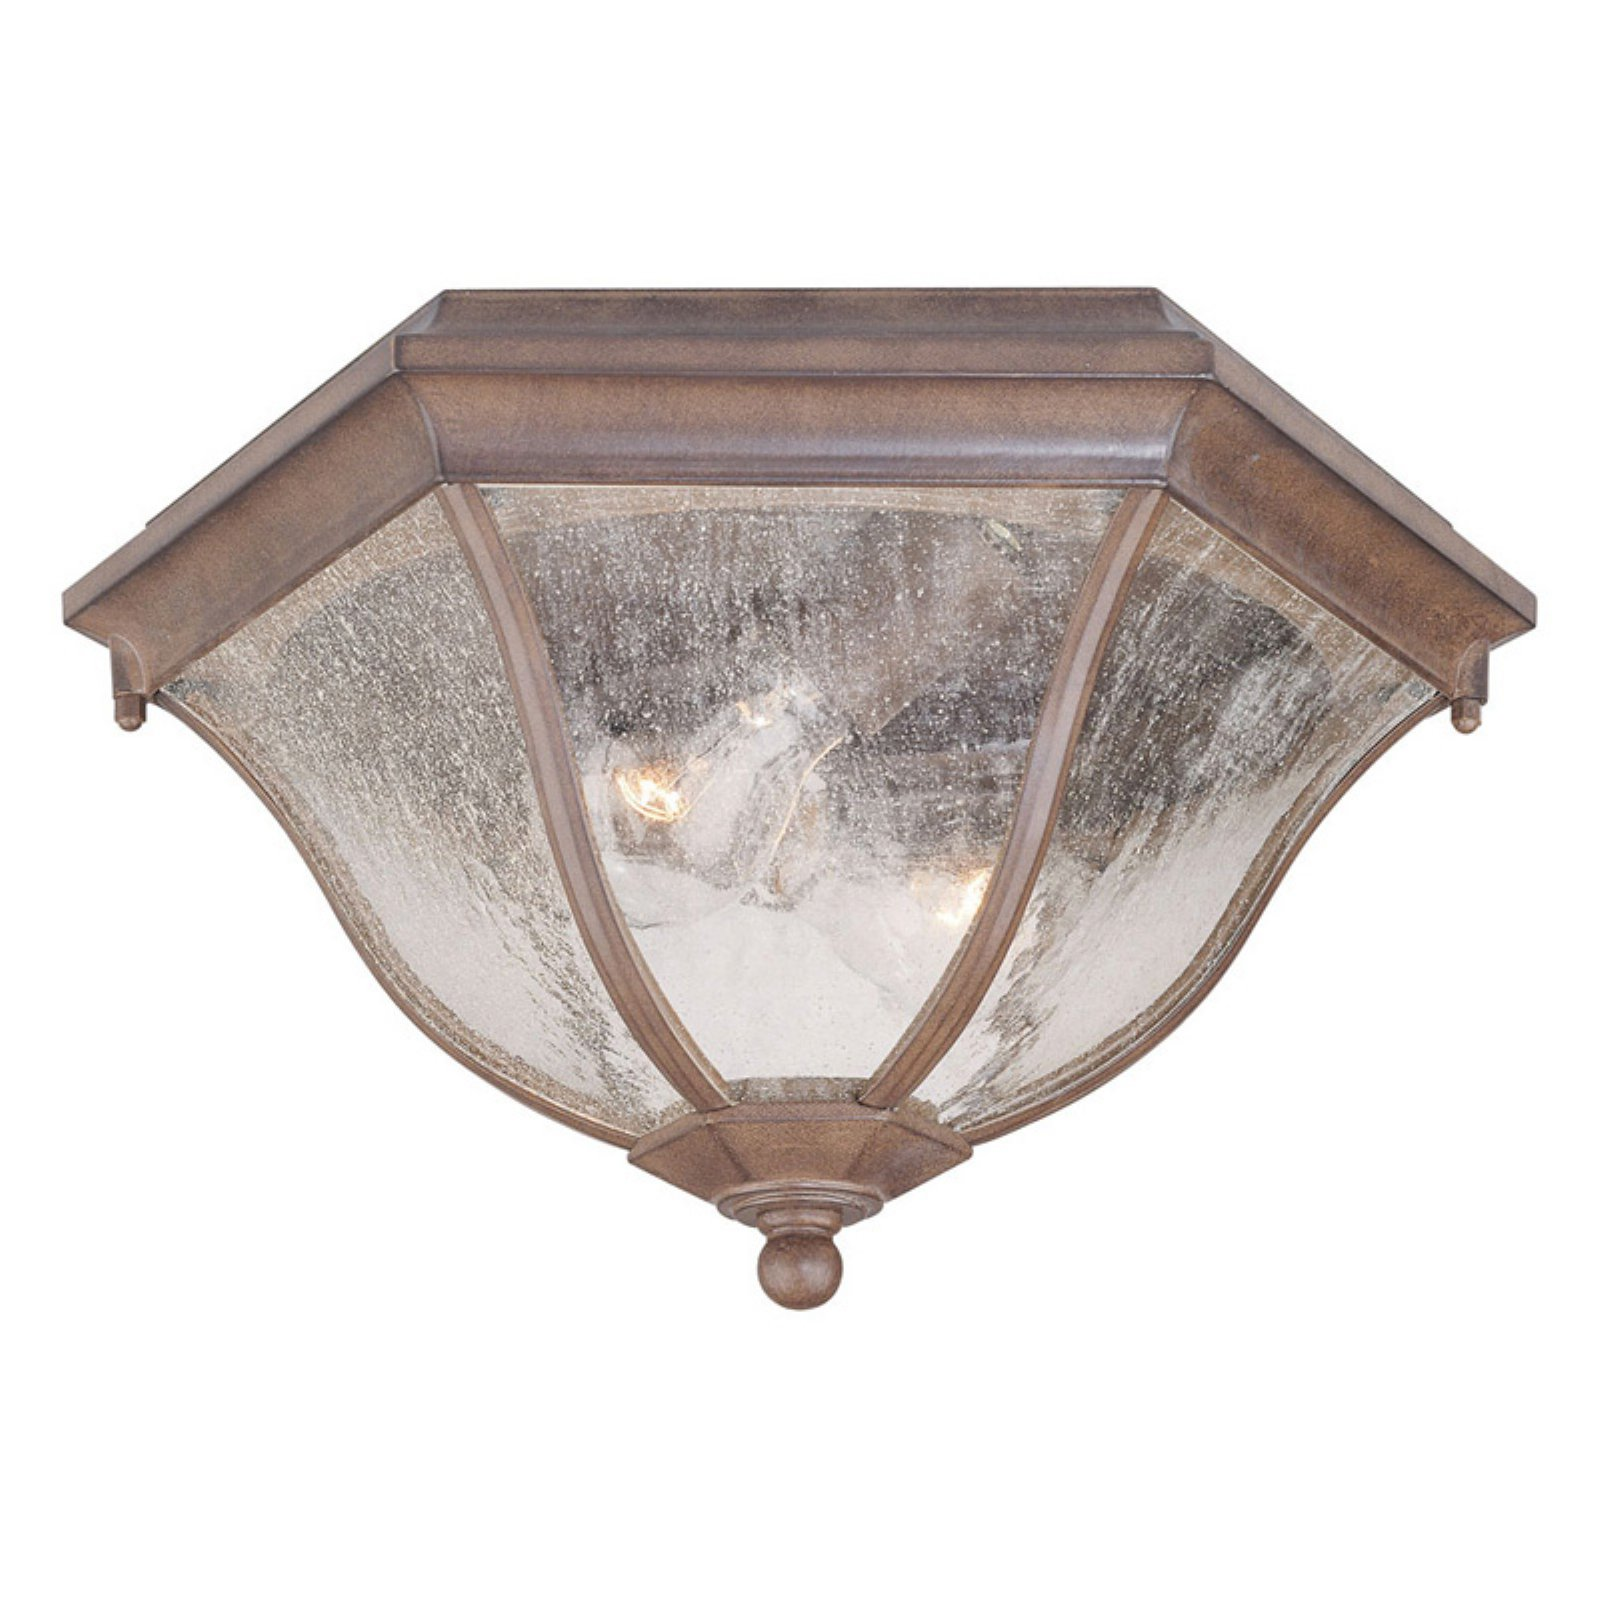 Acclaim Lighting Flushmount 7.75 in. Outdoor Ceiling Mount Light Fixture